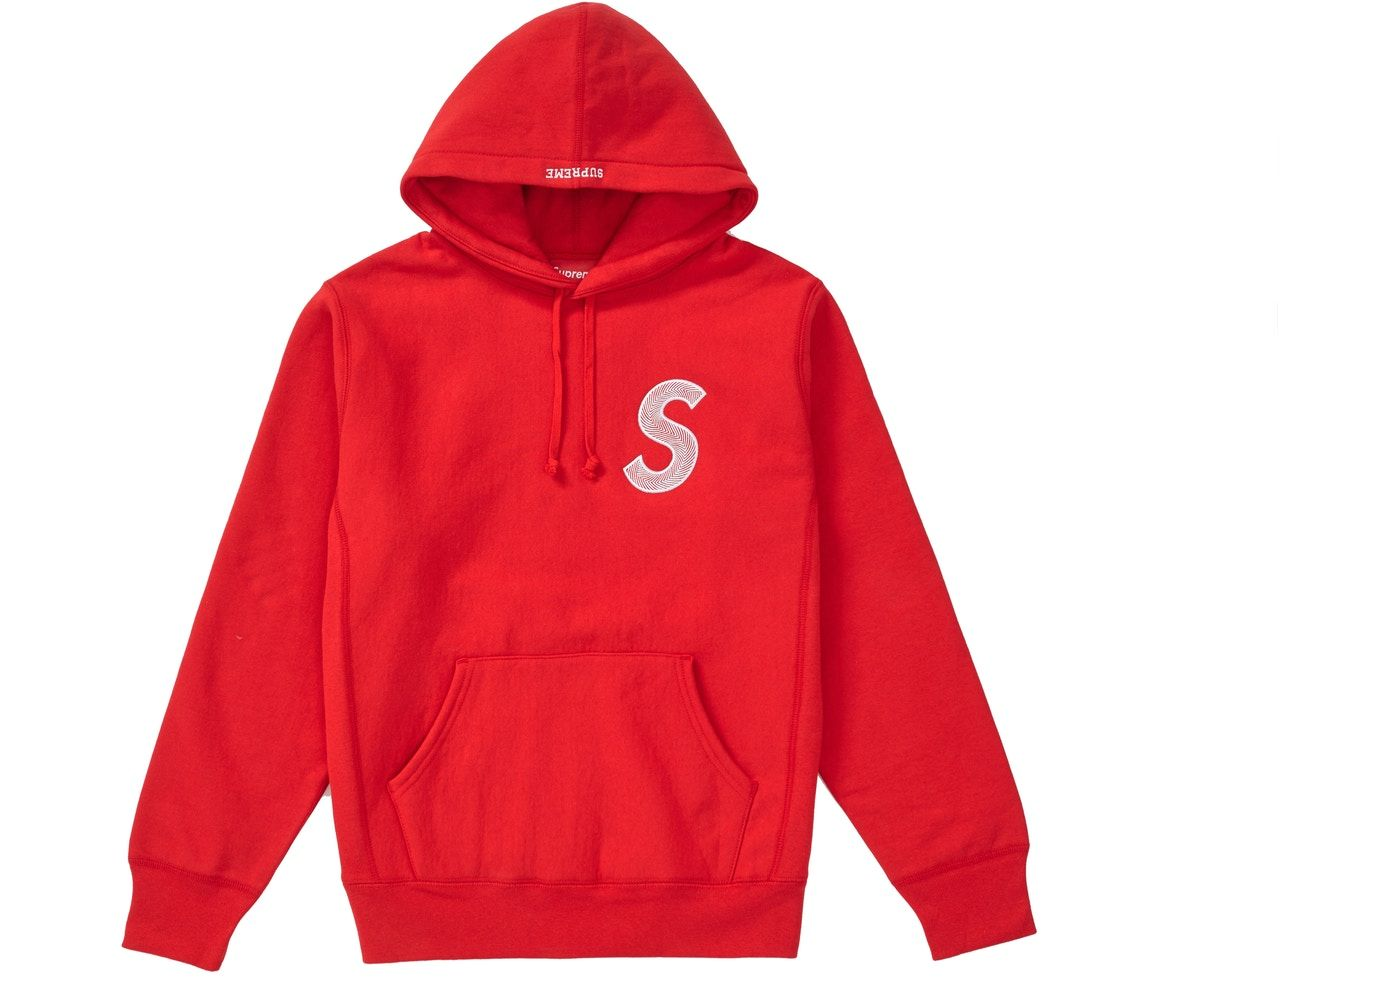 543bc709 Check out the Supreme S Logo Hooded Sweatshirt (FW18) Red available on  StockX